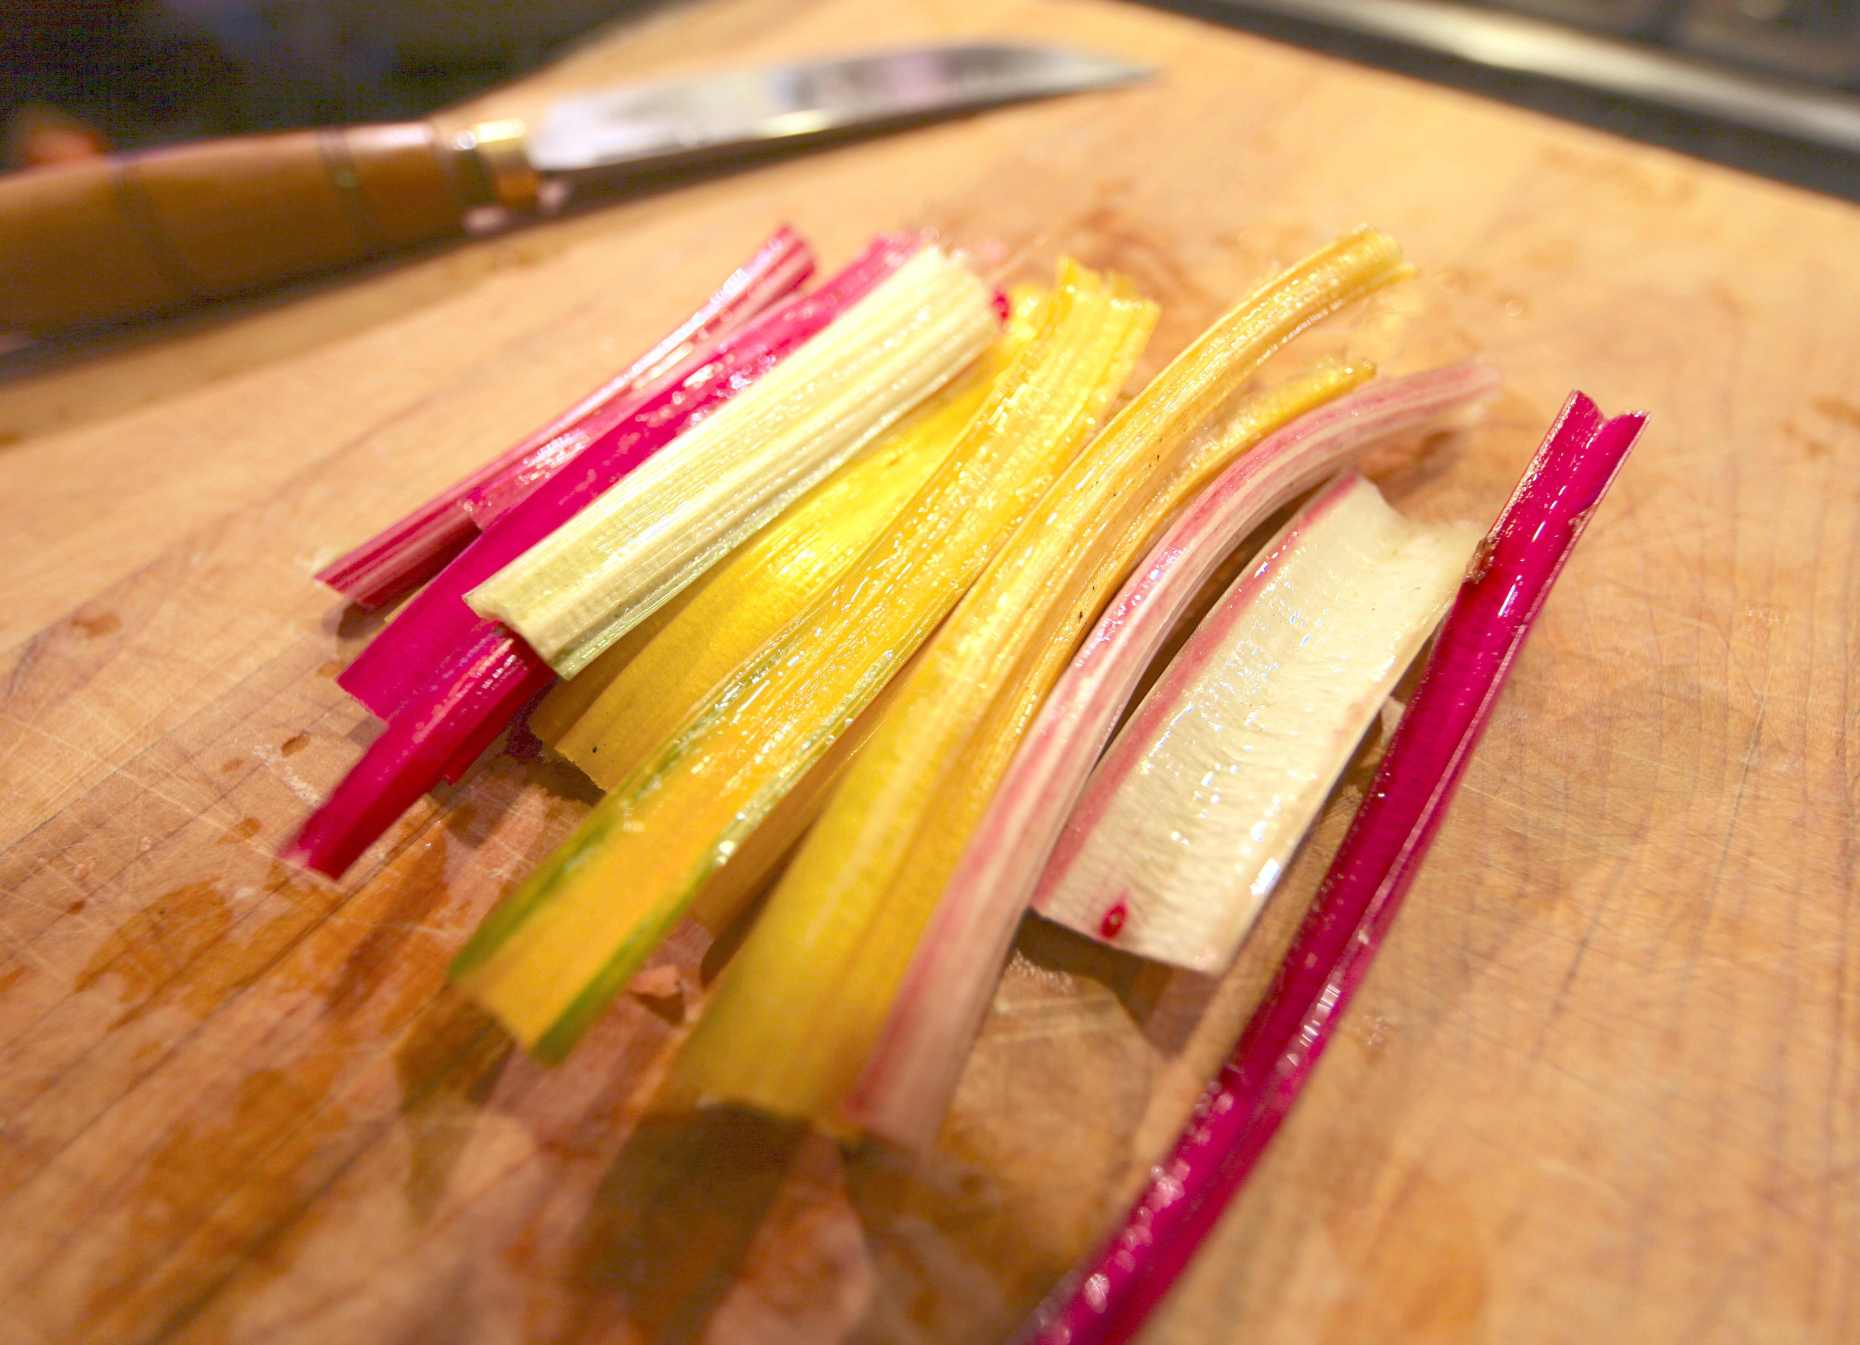 Swiss Chard Stalks are Pretty and Delicious. Photo © Liesl Clark